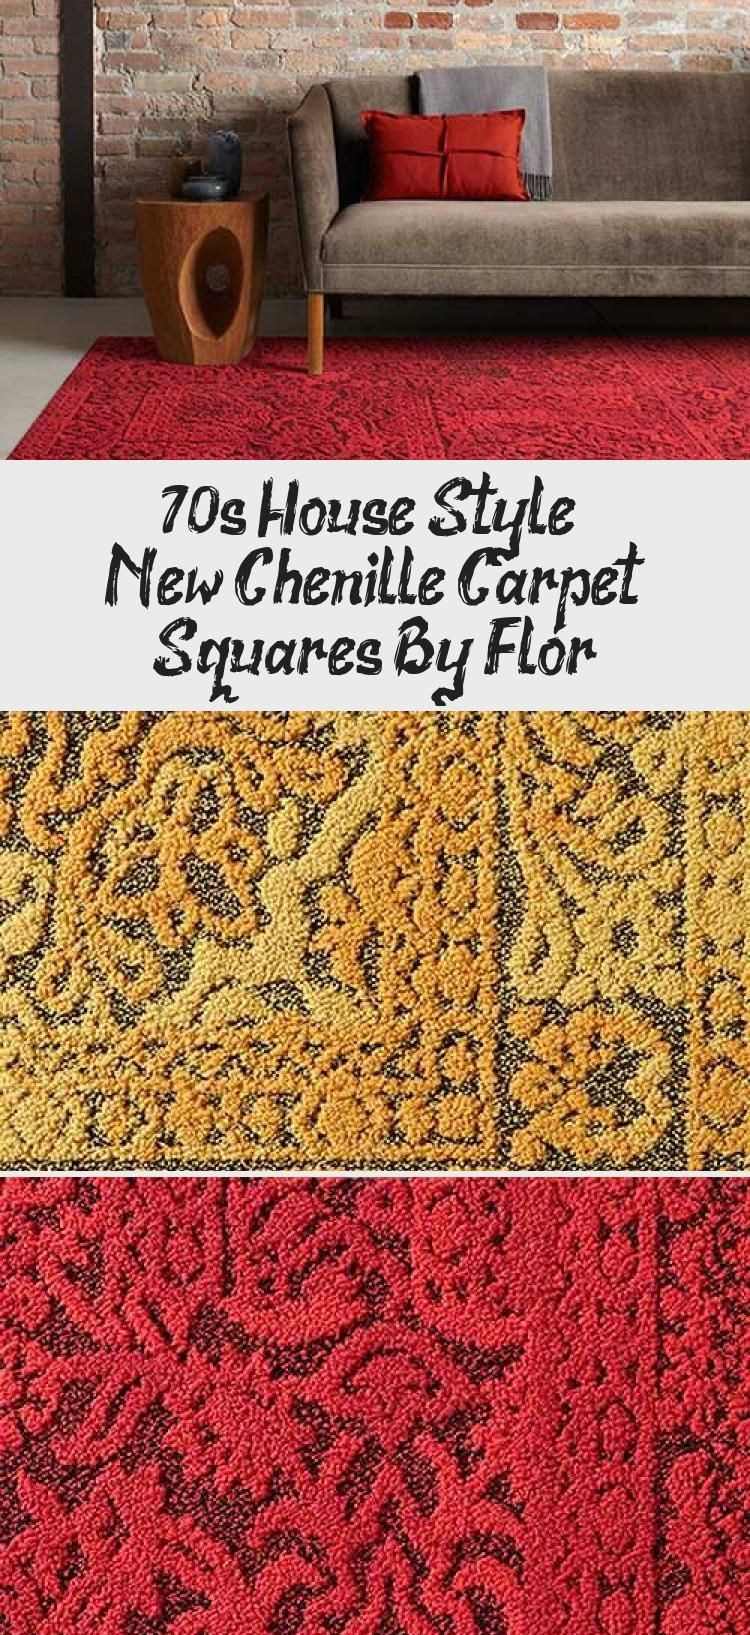 70s House Style New Chenille Carpet Squares By Flor Home Accesories In 2020 Carpet Squares Textured Carpet Retro Renovation